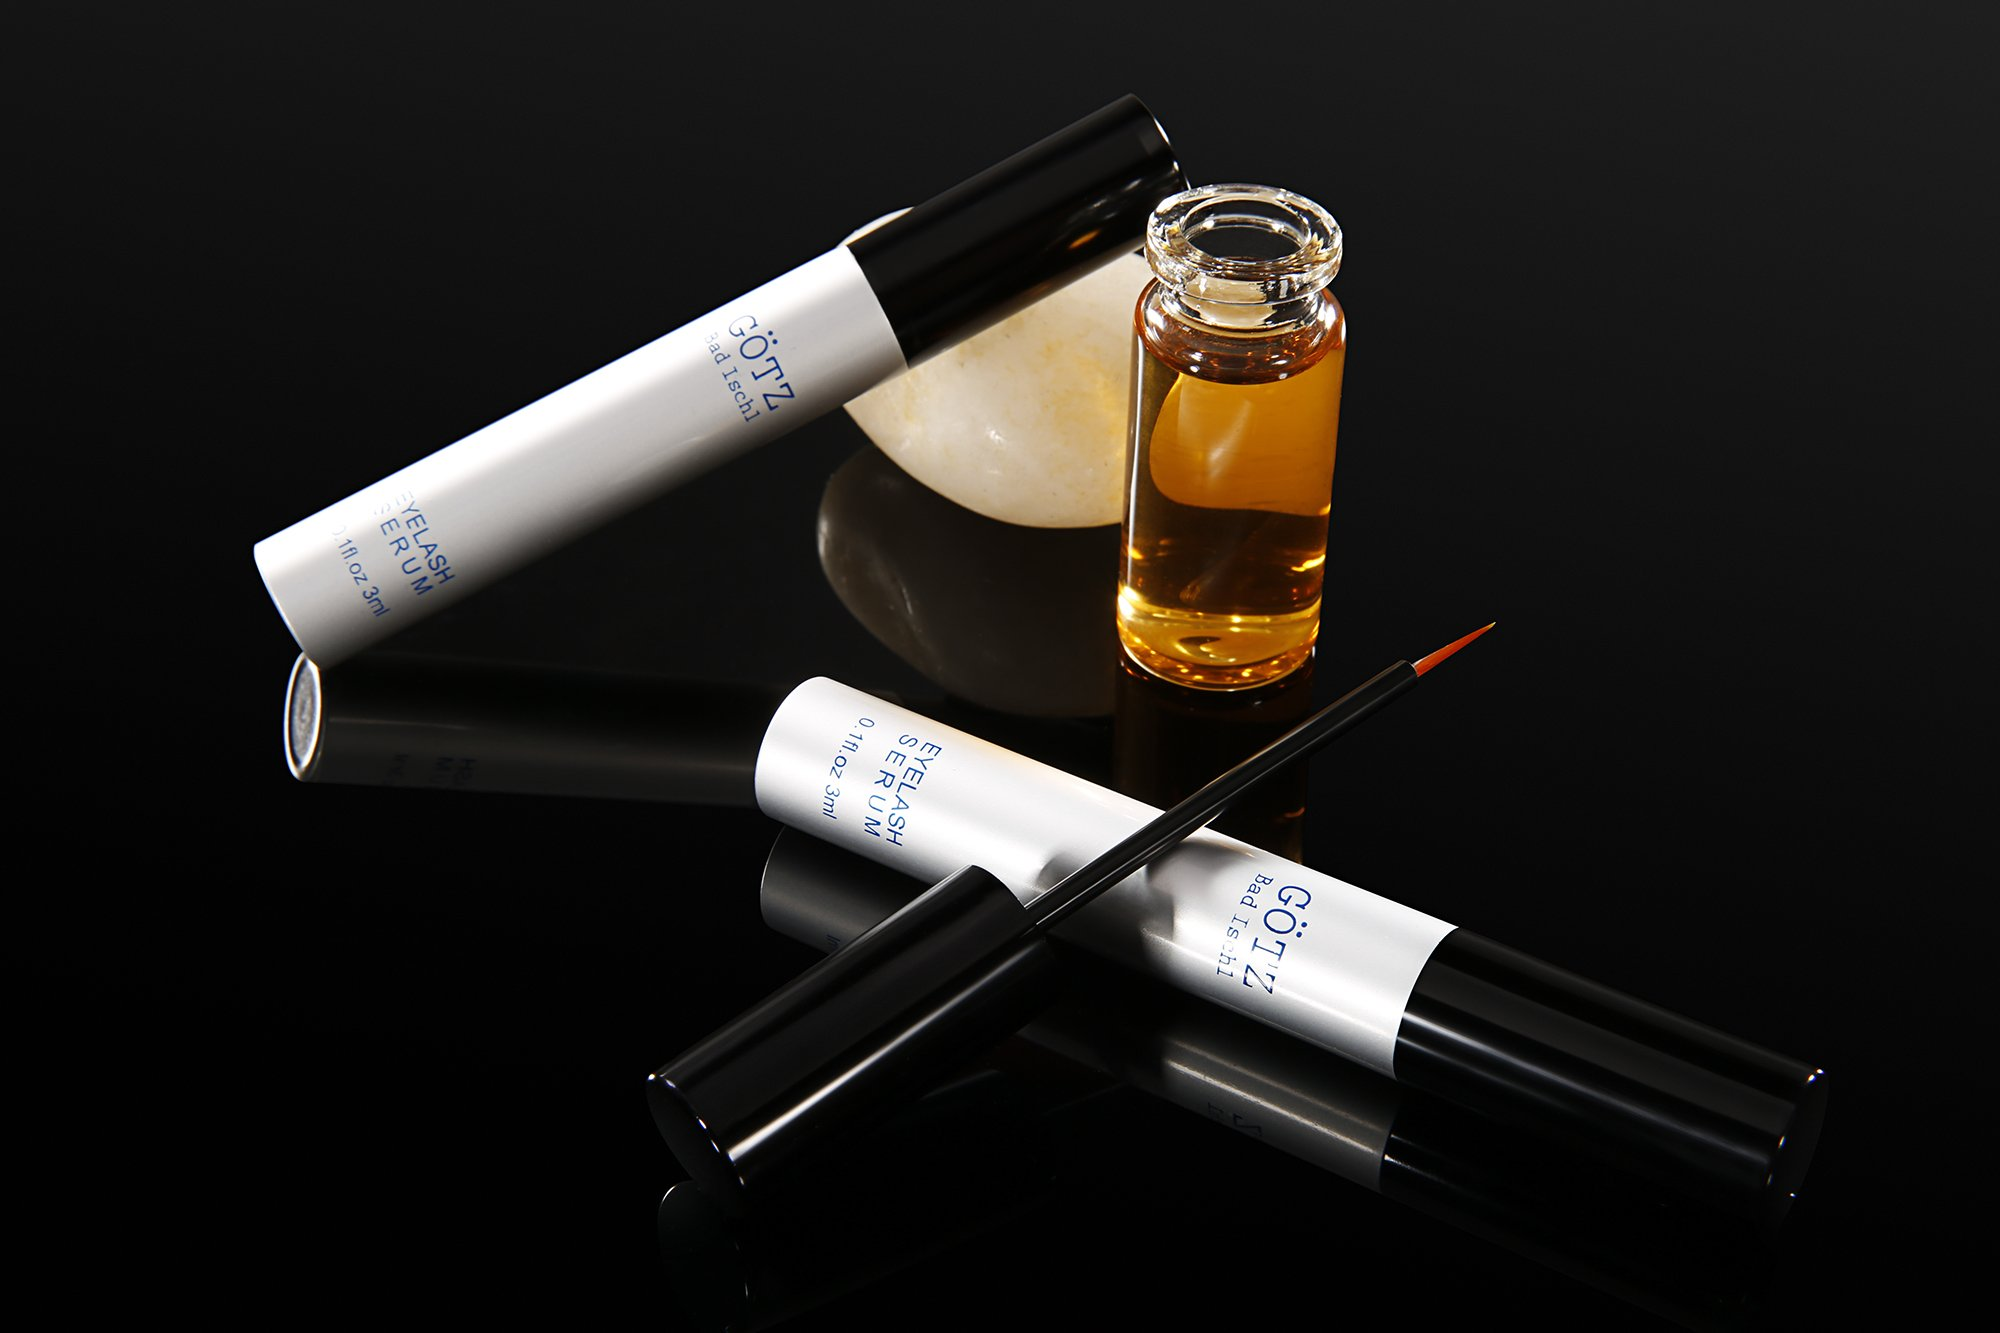 Eyelash Growth Serum GÖTZ BAD ISCHL Lash Growth Serum & Brow Serum for Longer Fuller and Thick Eyelashes and Eyebrows